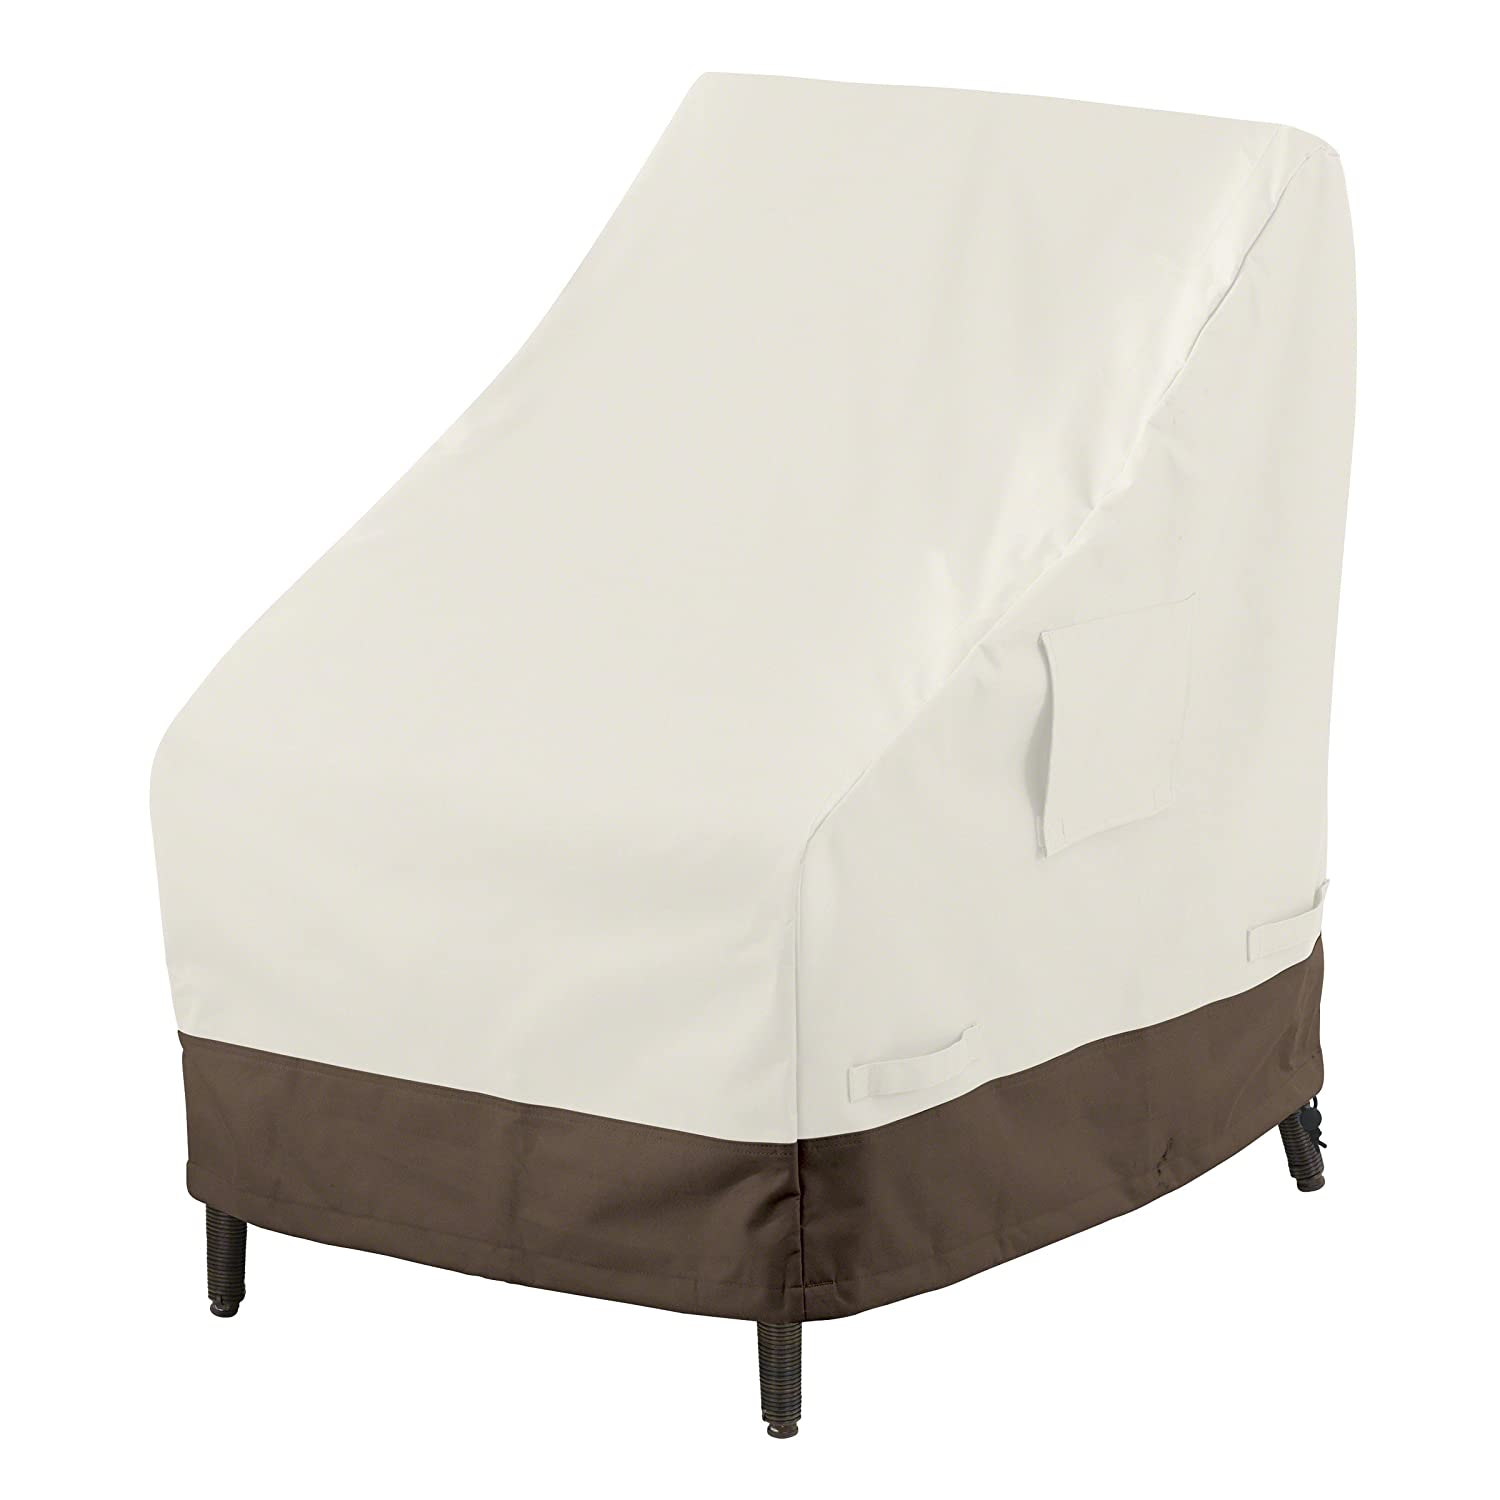 Amazon AmazonBasics High Back Chair Patio Cover Patio